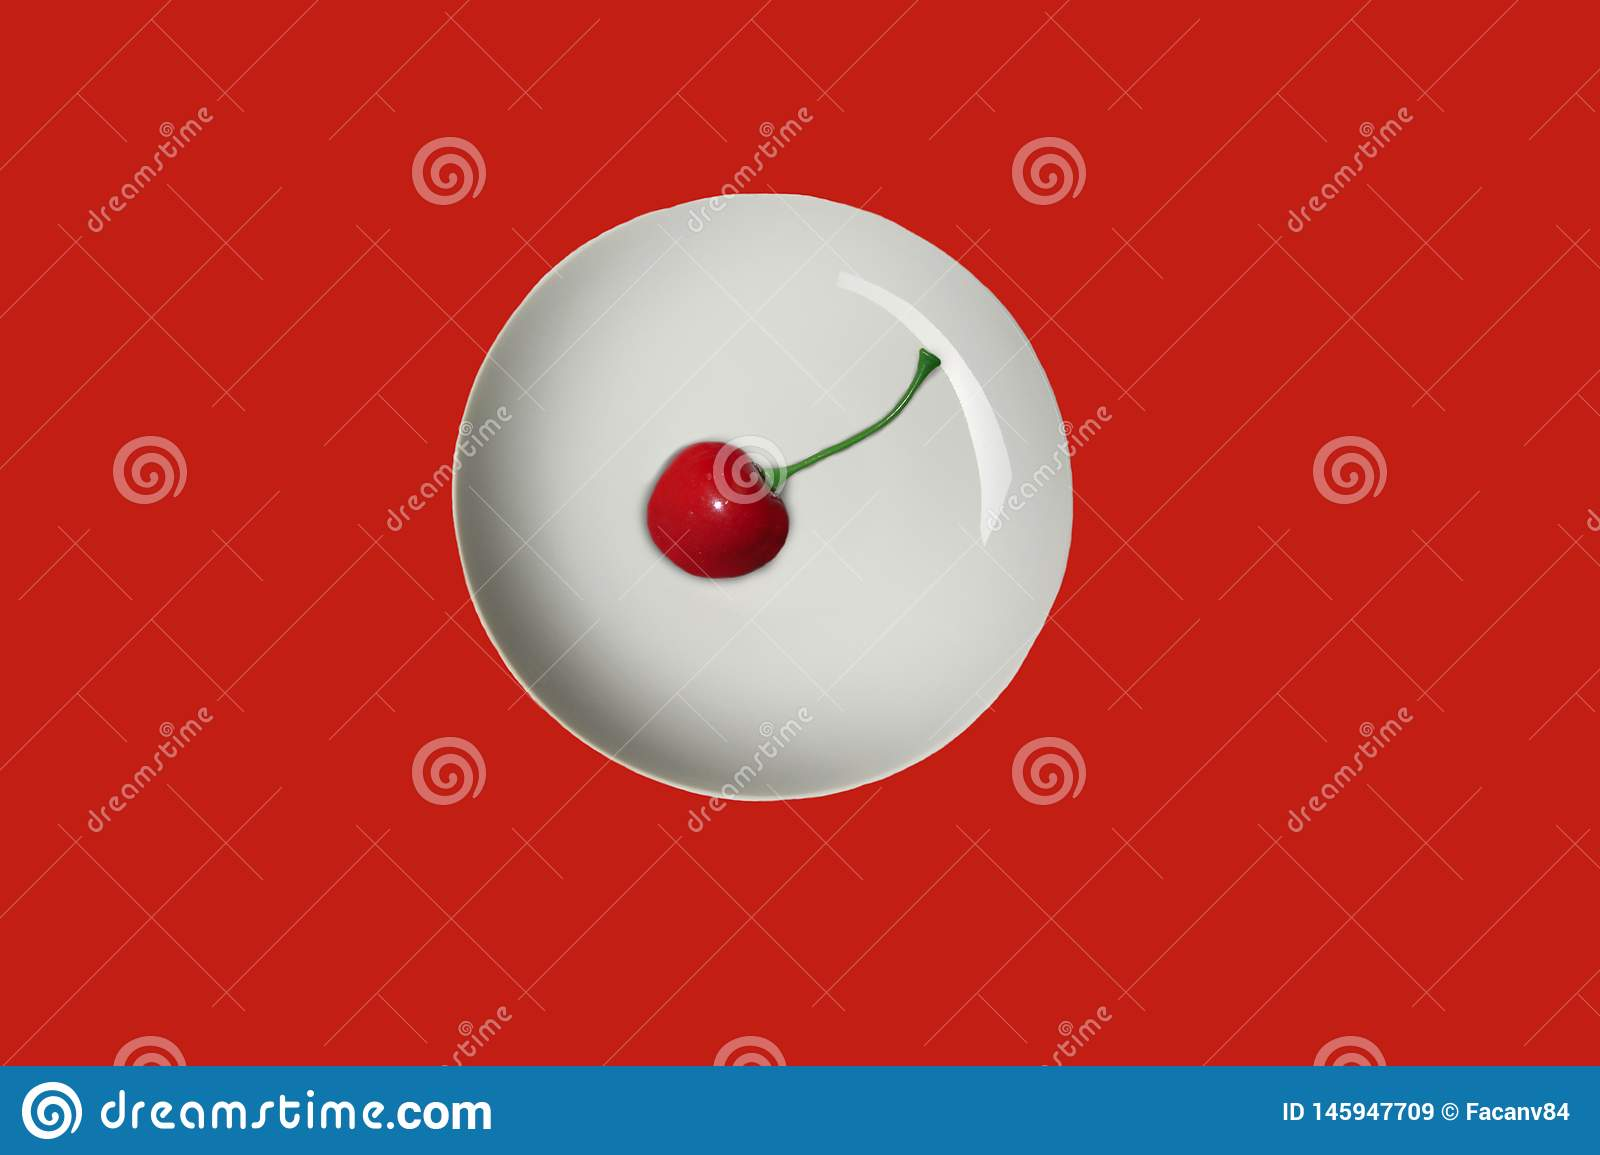 Minimalism in the photo. One ripe, fresh, juicy and tasty cherry in a white plate. Red surface.